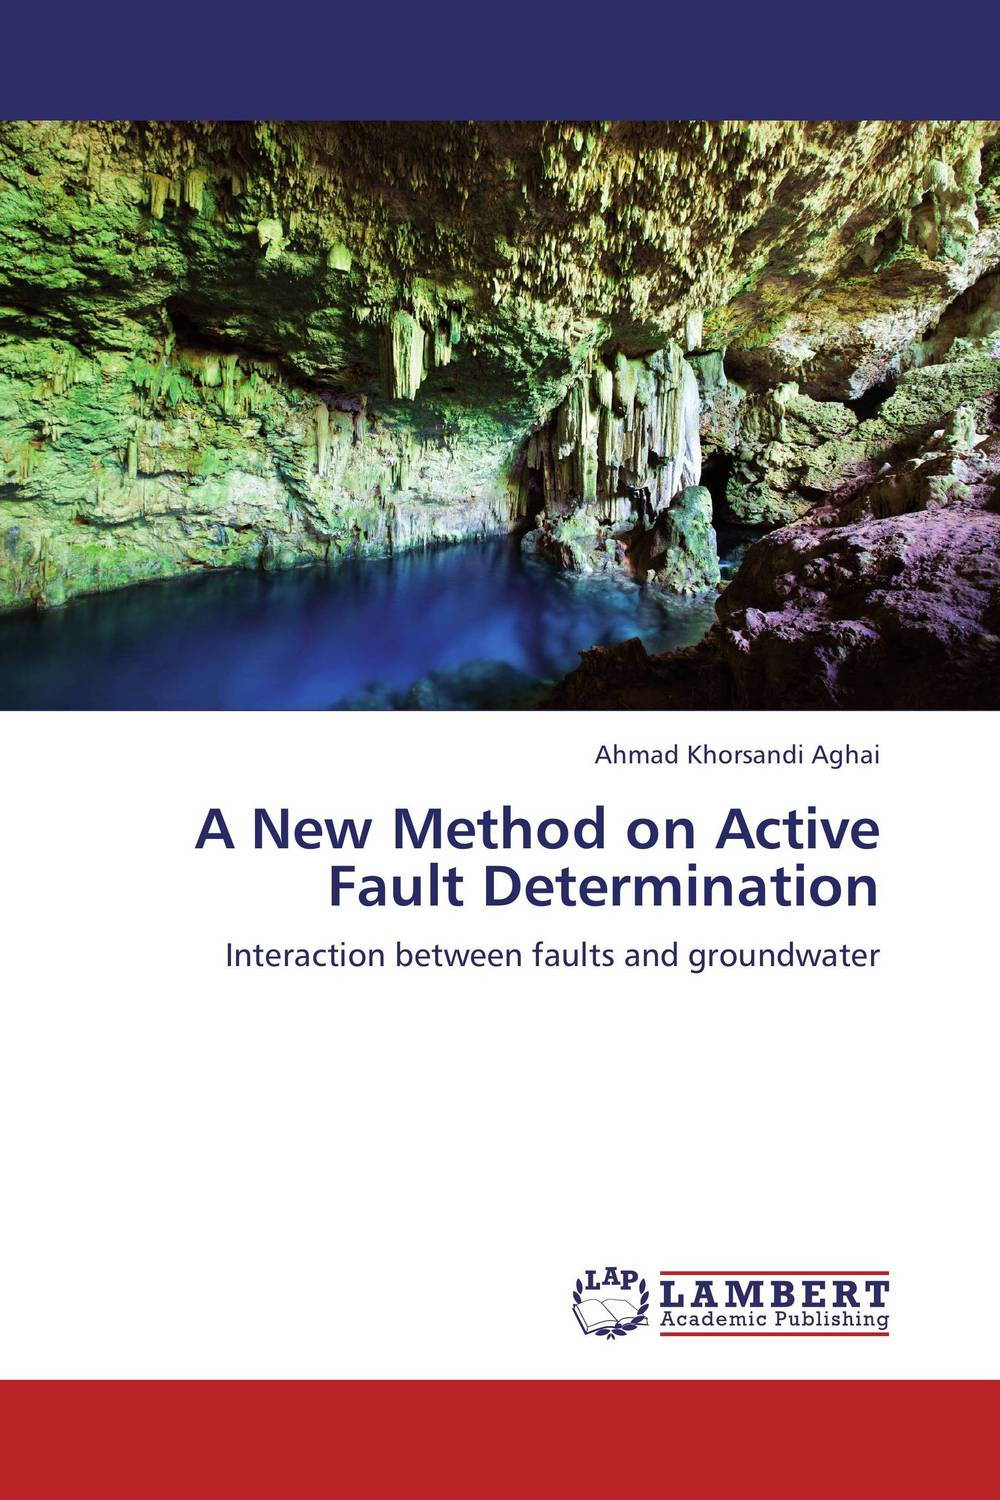 A New Method on Active Fault Determination livelihoods and water resources